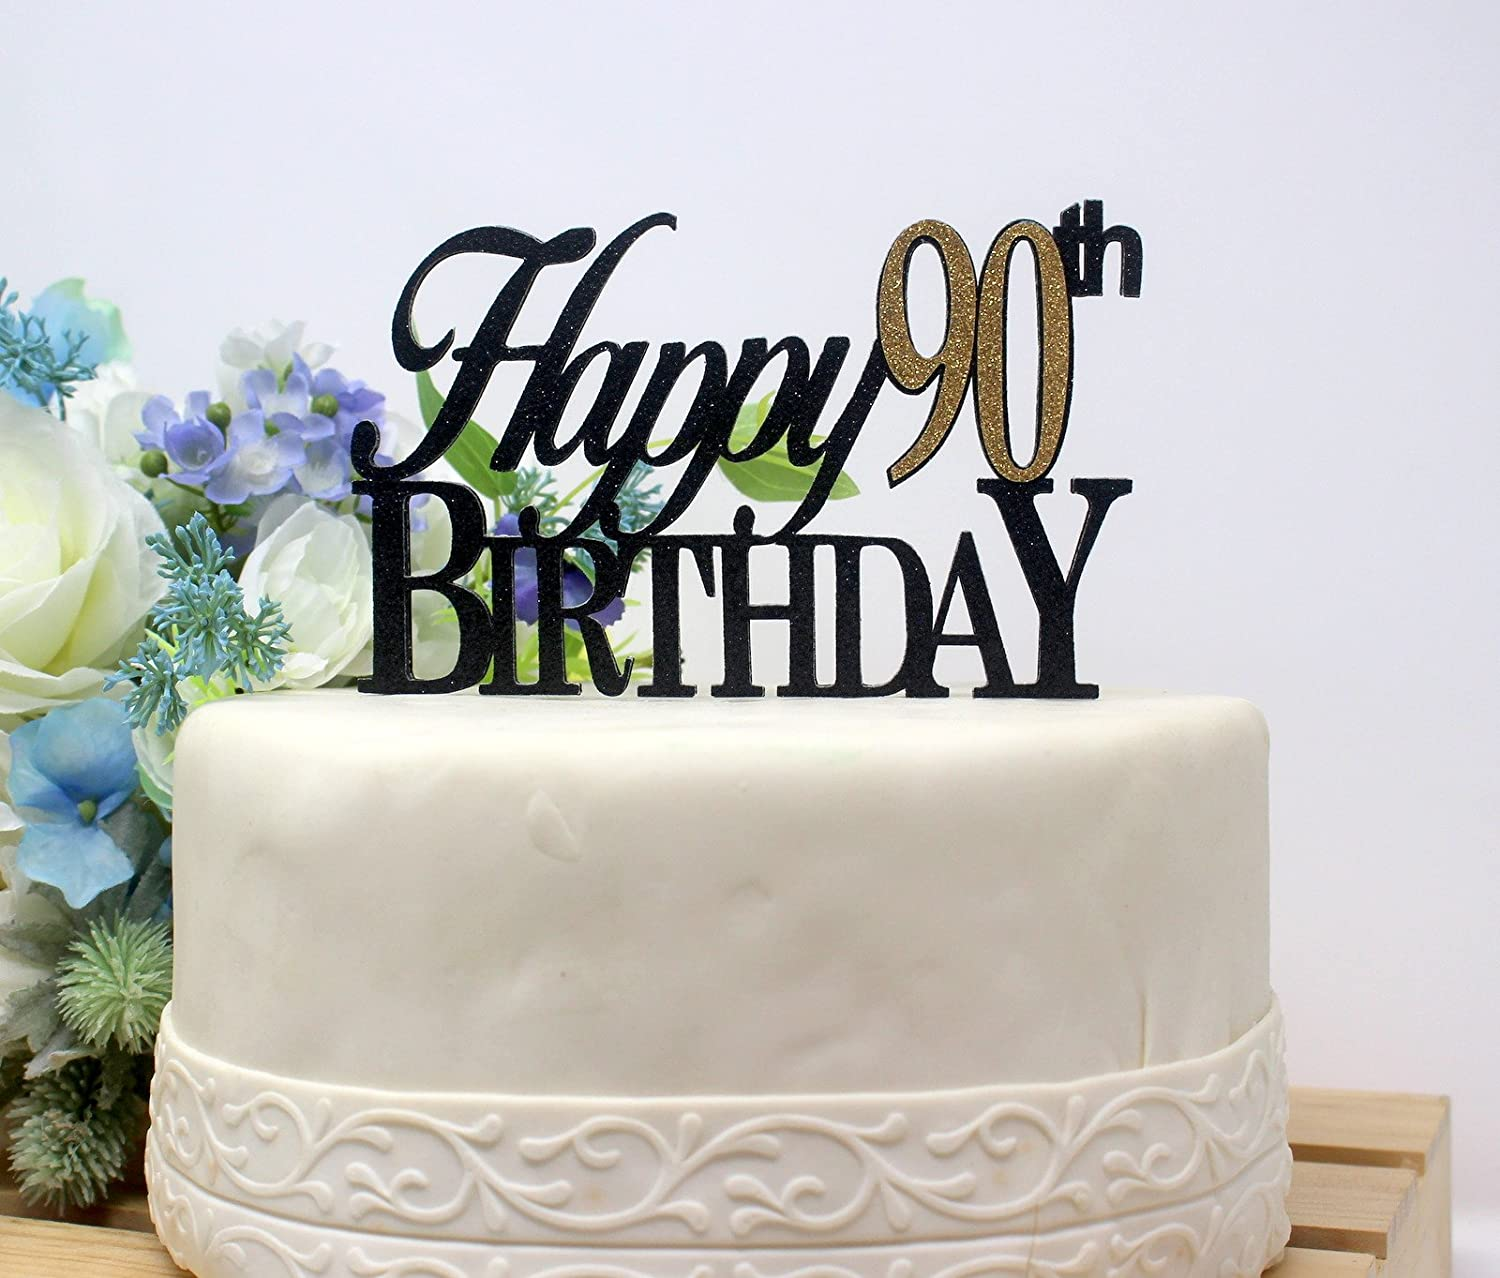 All About Details Black Happy 90th Birthday Cake Topper CATH90B